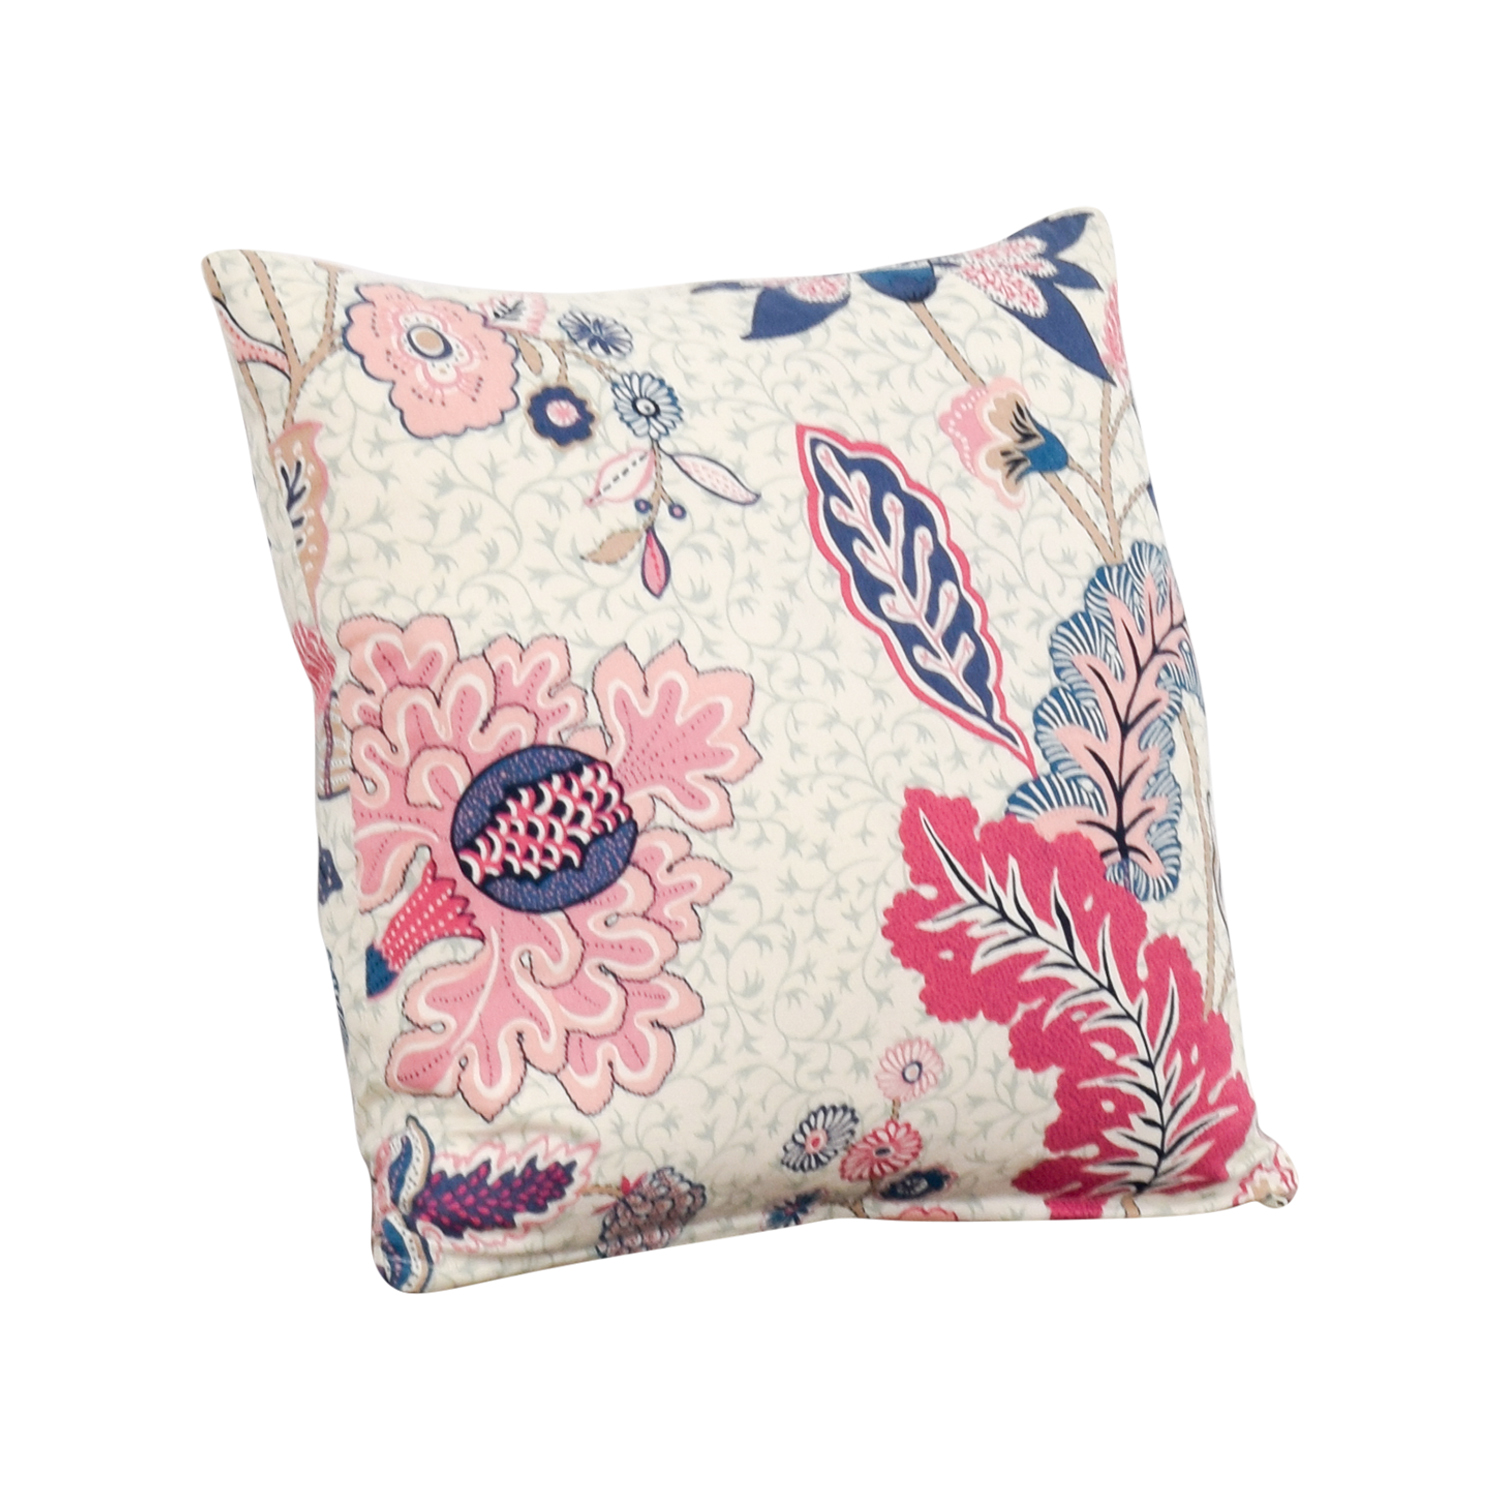 Society Social Society Social Blue and Pink Pattern Pillow on sale